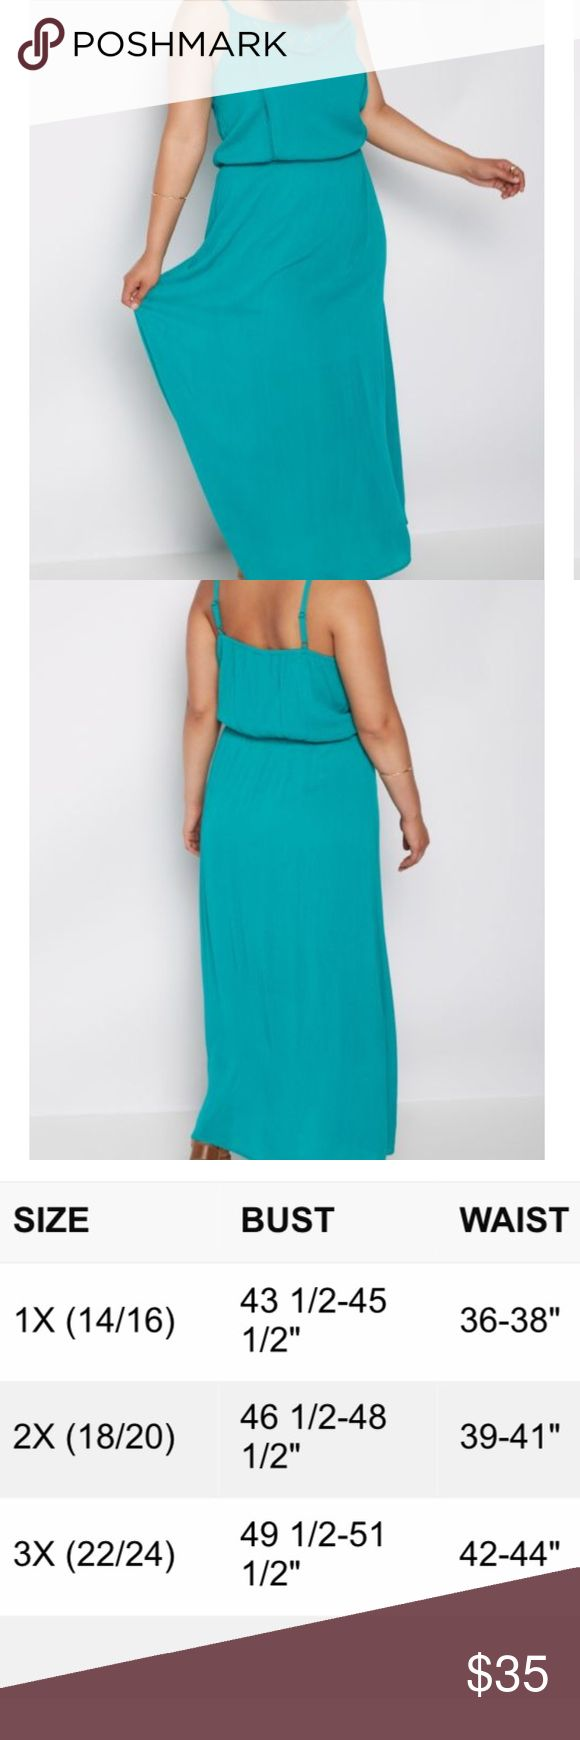 PLUS Turquoise Maxi Dress 1X Let loose in this carefree maxi dress made of airy gauze fabric. It's fashioned with elegant floral crochet across the neckline and down the bodice. Perfect with your favorite pair of boots! Add a jean jacket for instant style! Built-in lining Self: 100% rayon; Lining: 100% polyester Hand wash Model wears size 1X www.contemporarycowgirlbooteryboutique.com Contemporary Cowgirl Dresses Maxi